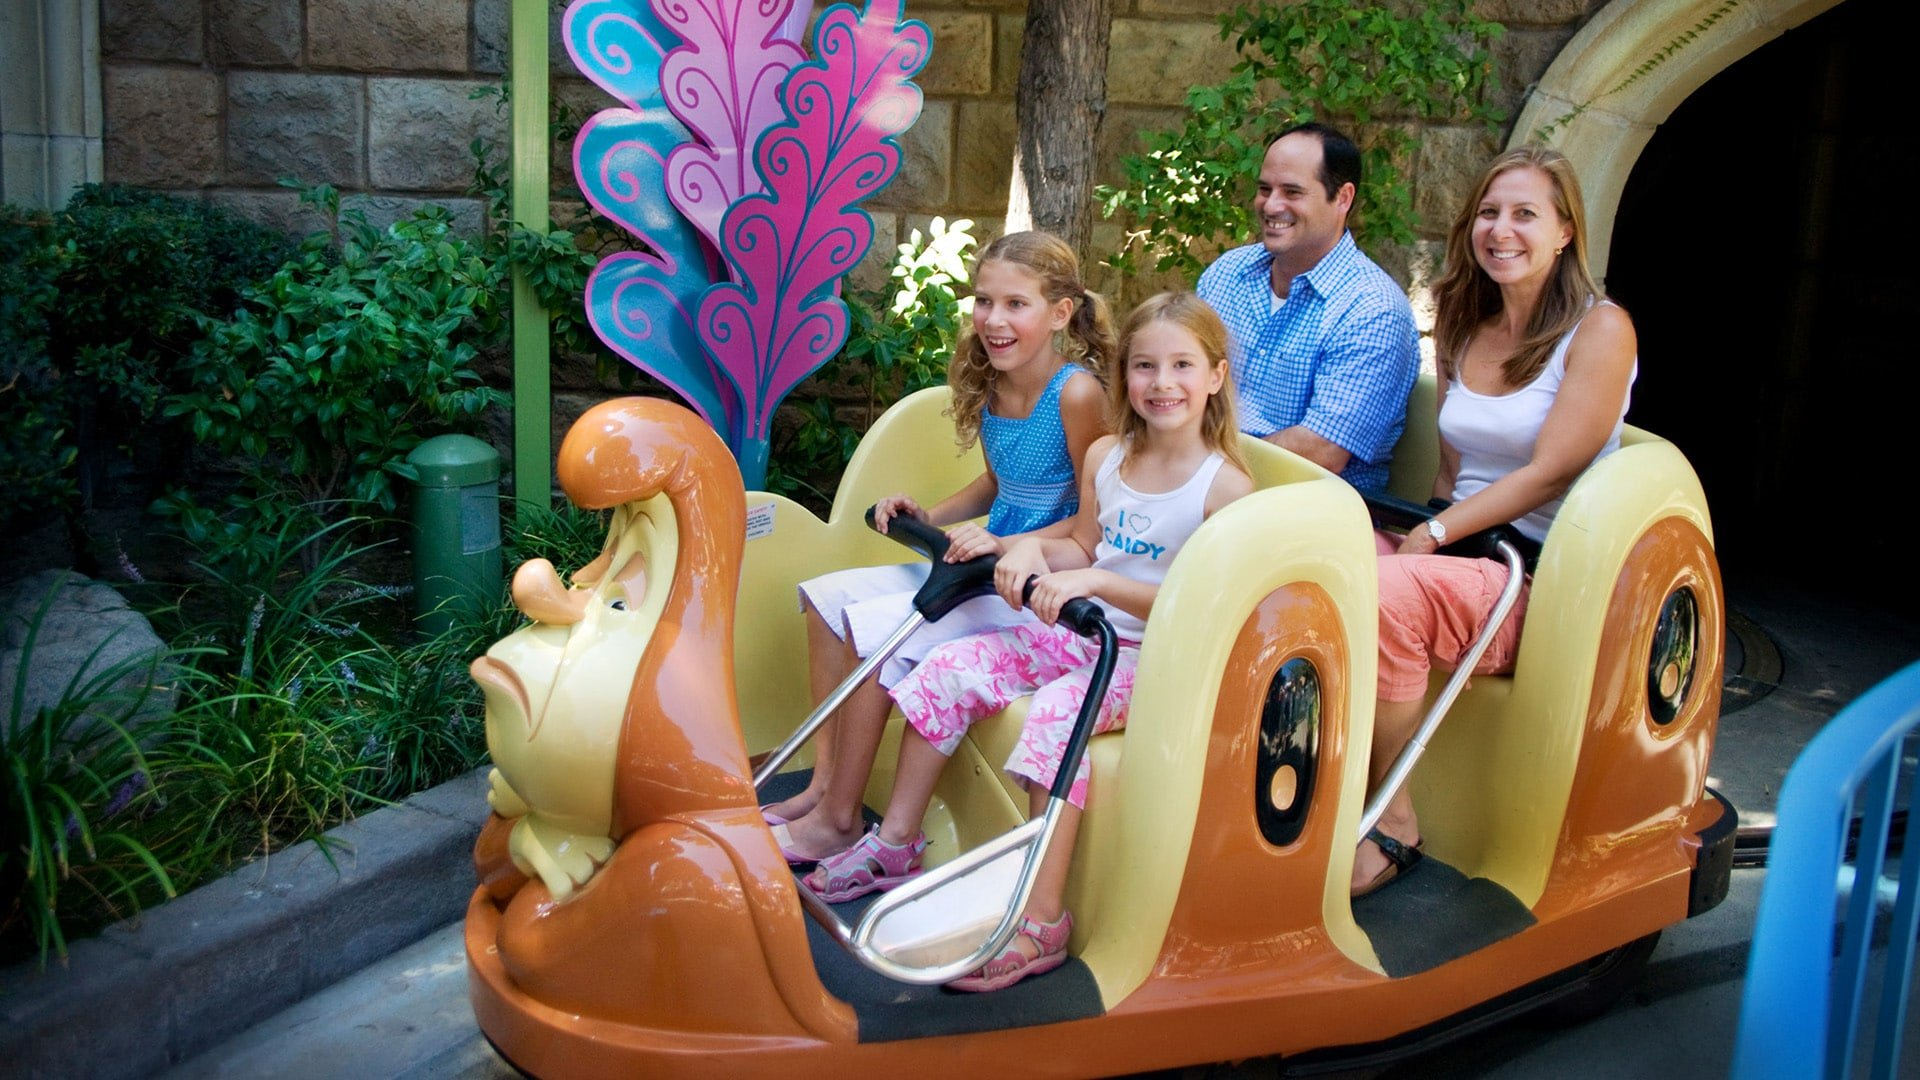 Alice in Wonderland ride at Disneyland